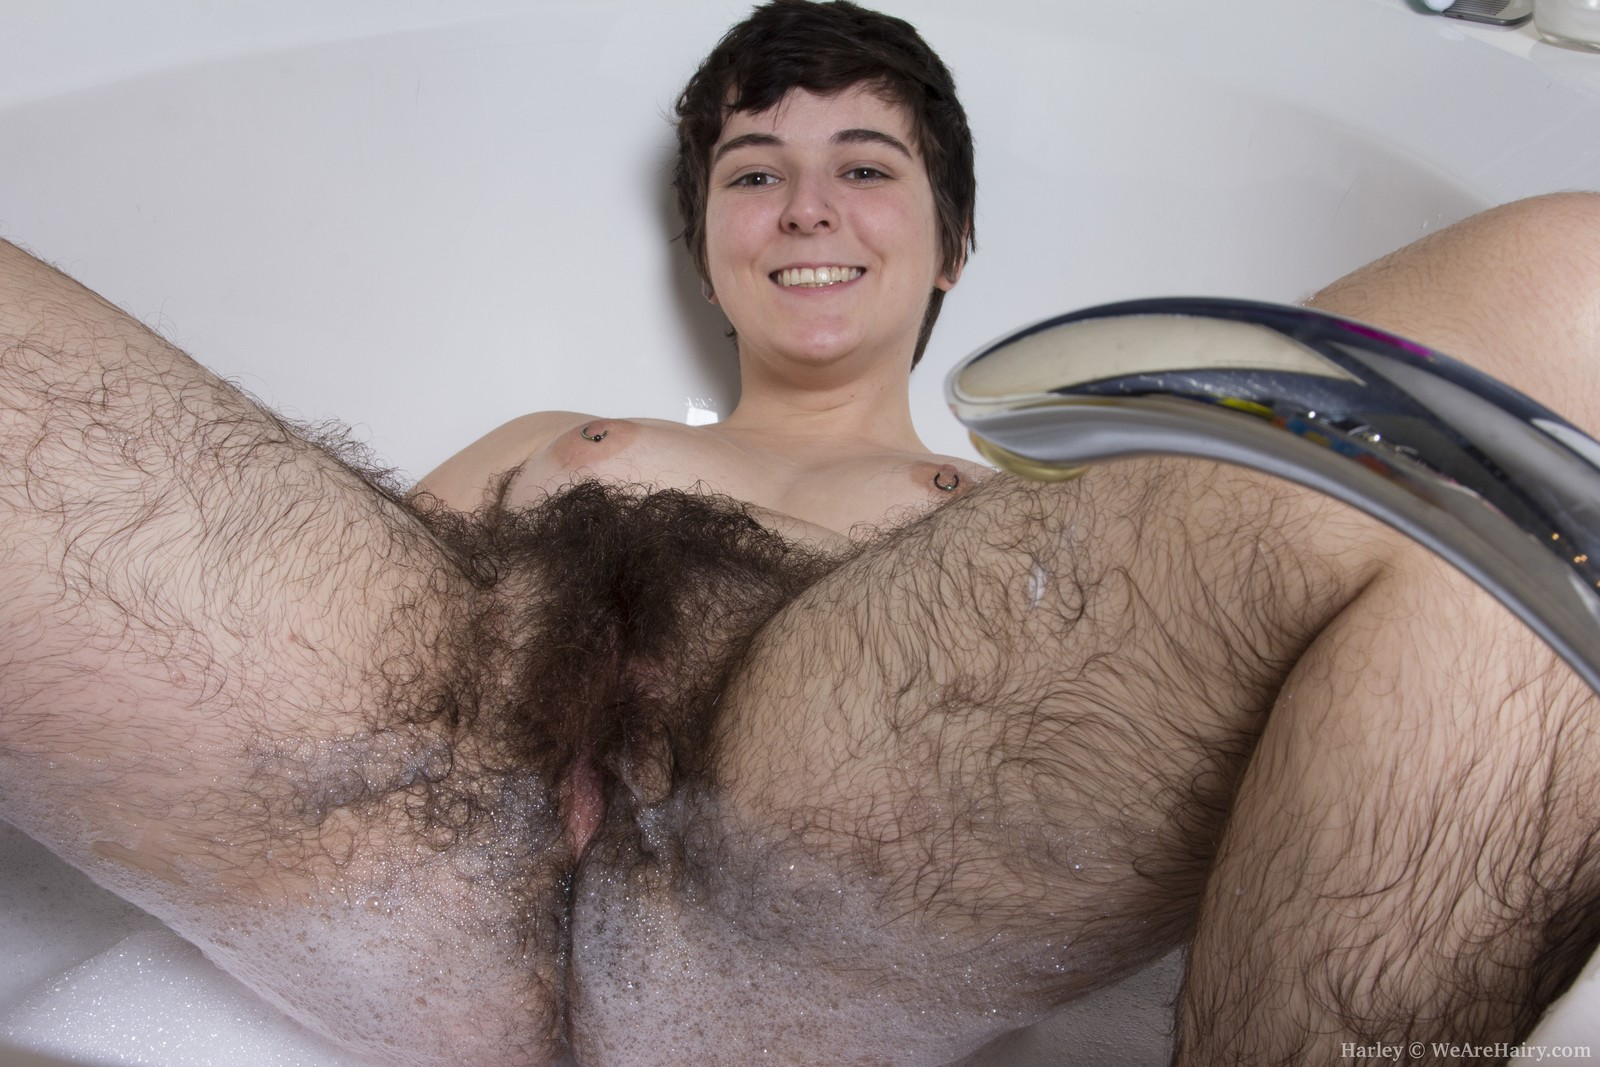 You porn extremely hairy women